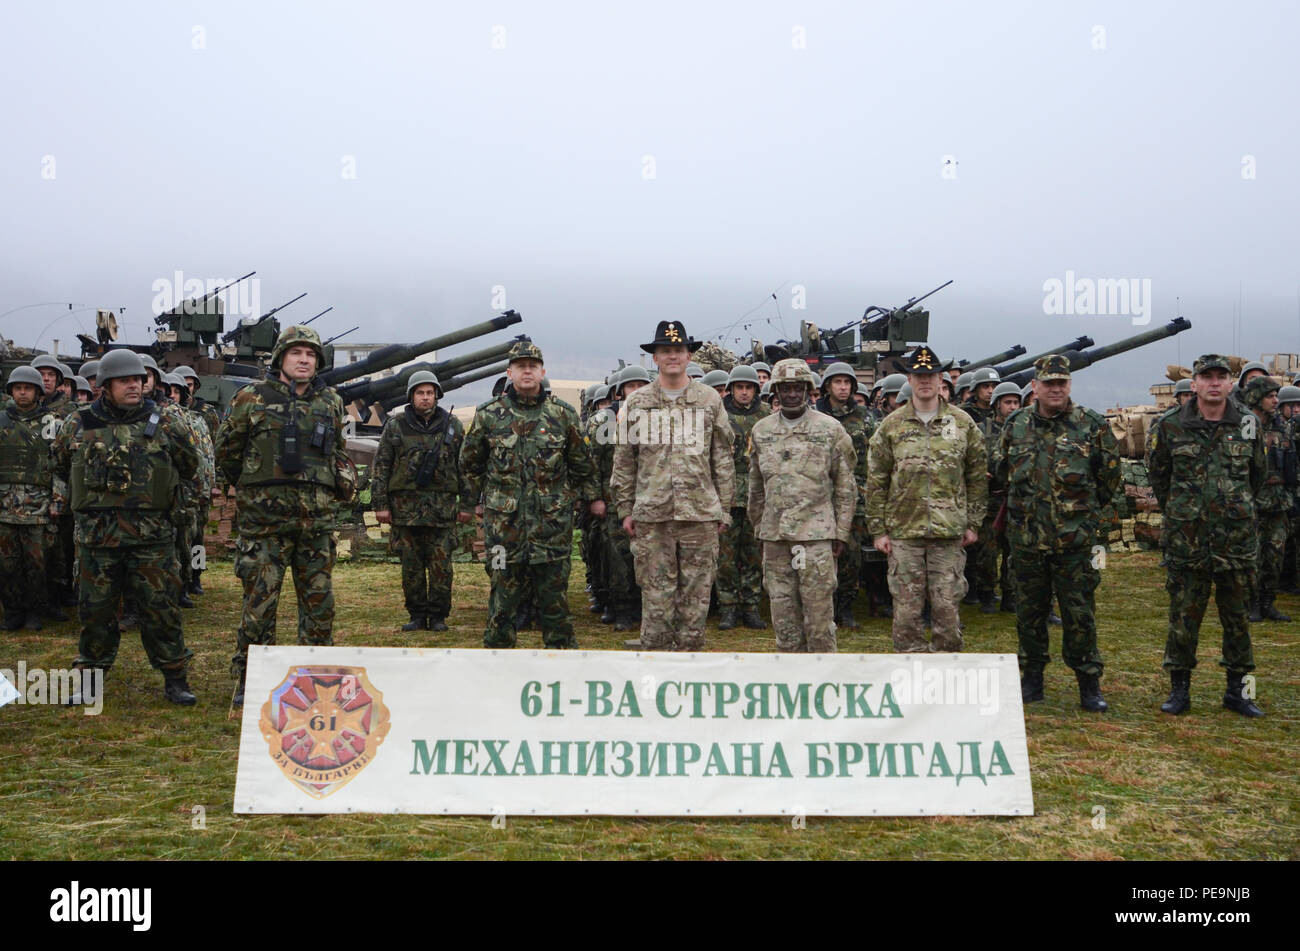 Key U.S. and Bulgarian Army leaders pose for a photo during the closing ceremony of Exercise Peace Sentinel at Novo Selo Training Center, Bulgaria, Nov. 24, 2015. (U.S. Army photo by Staff Sgt. Steven M. Colvin/Released) - Stock Image